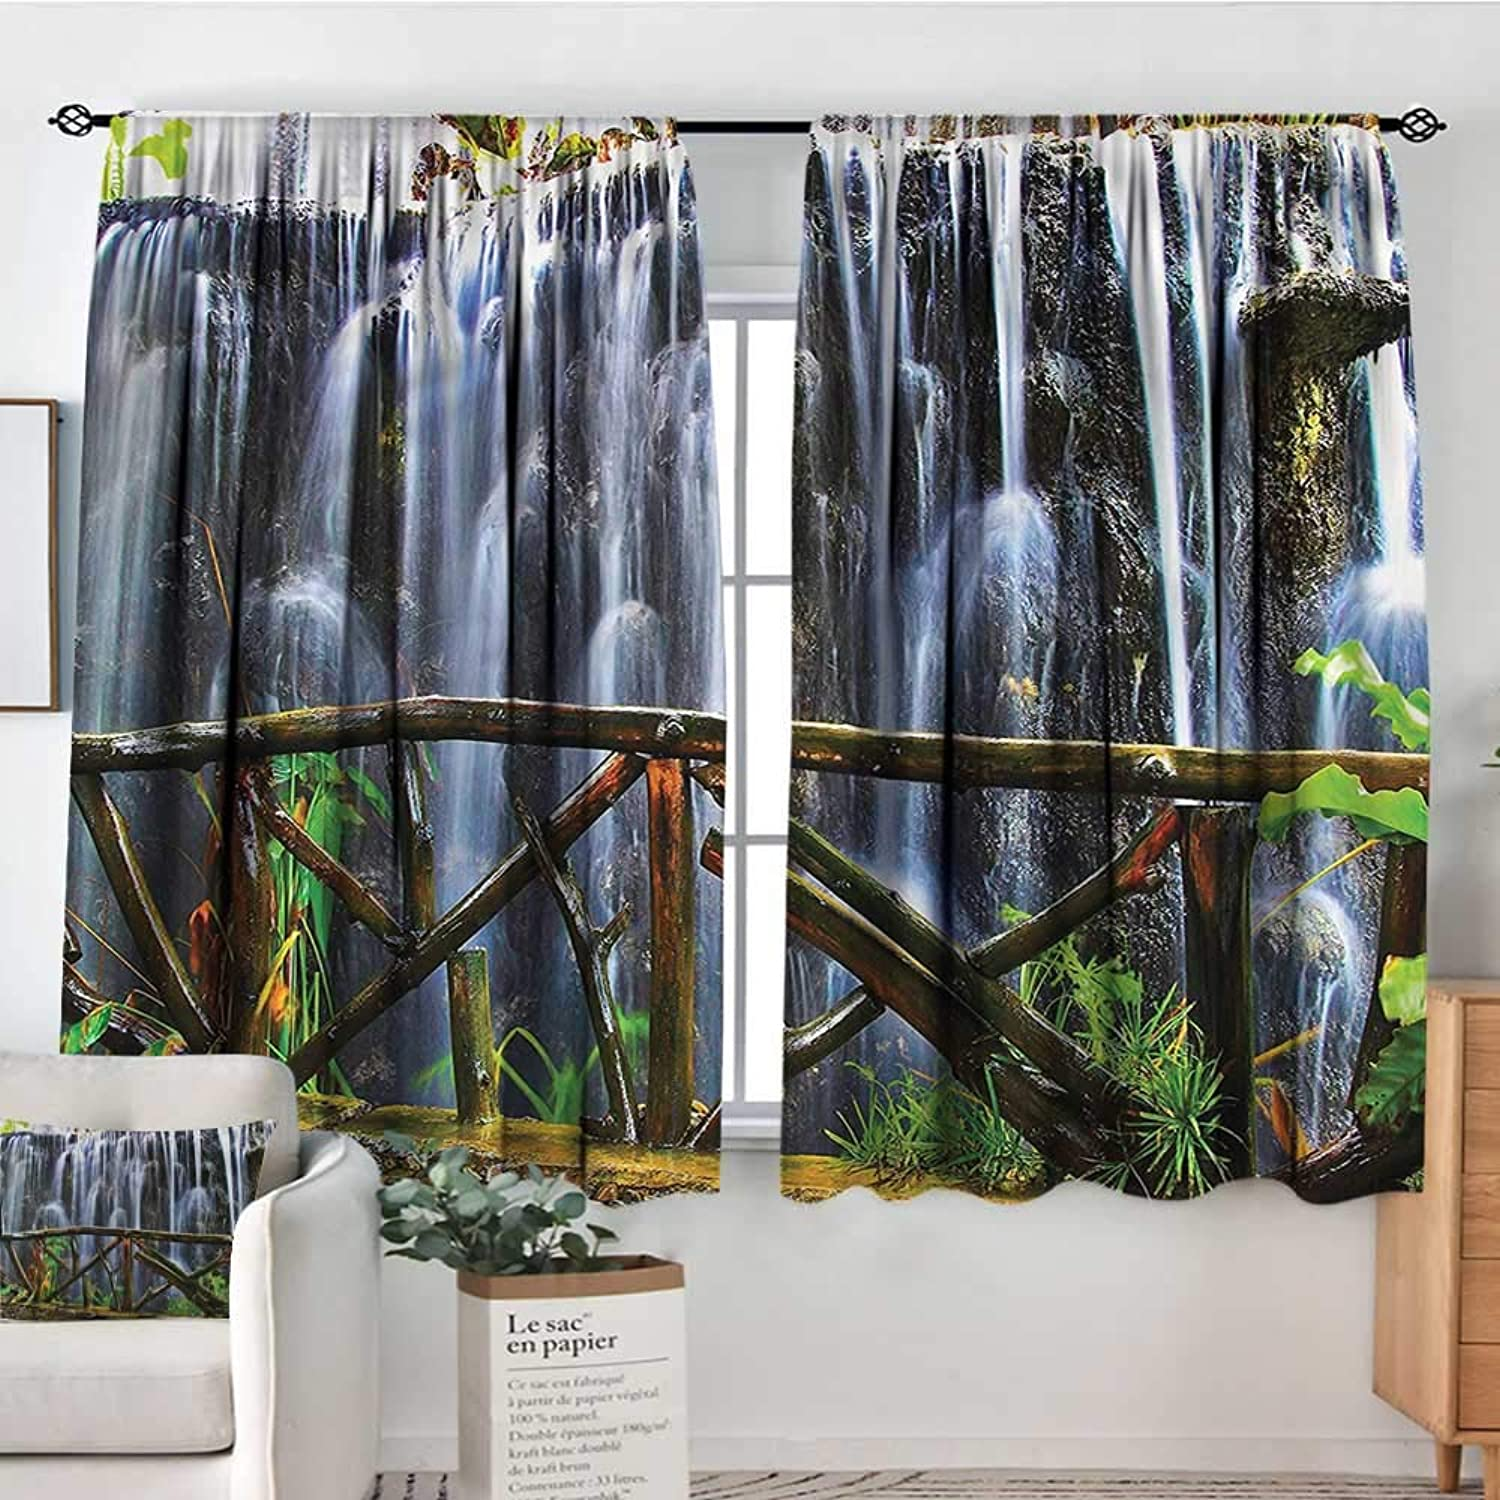 Familytaste Waterfall,Indo Panes Drapes Tropical Park Scenery 42 X54  Kids Backout Curtains for Bedroom